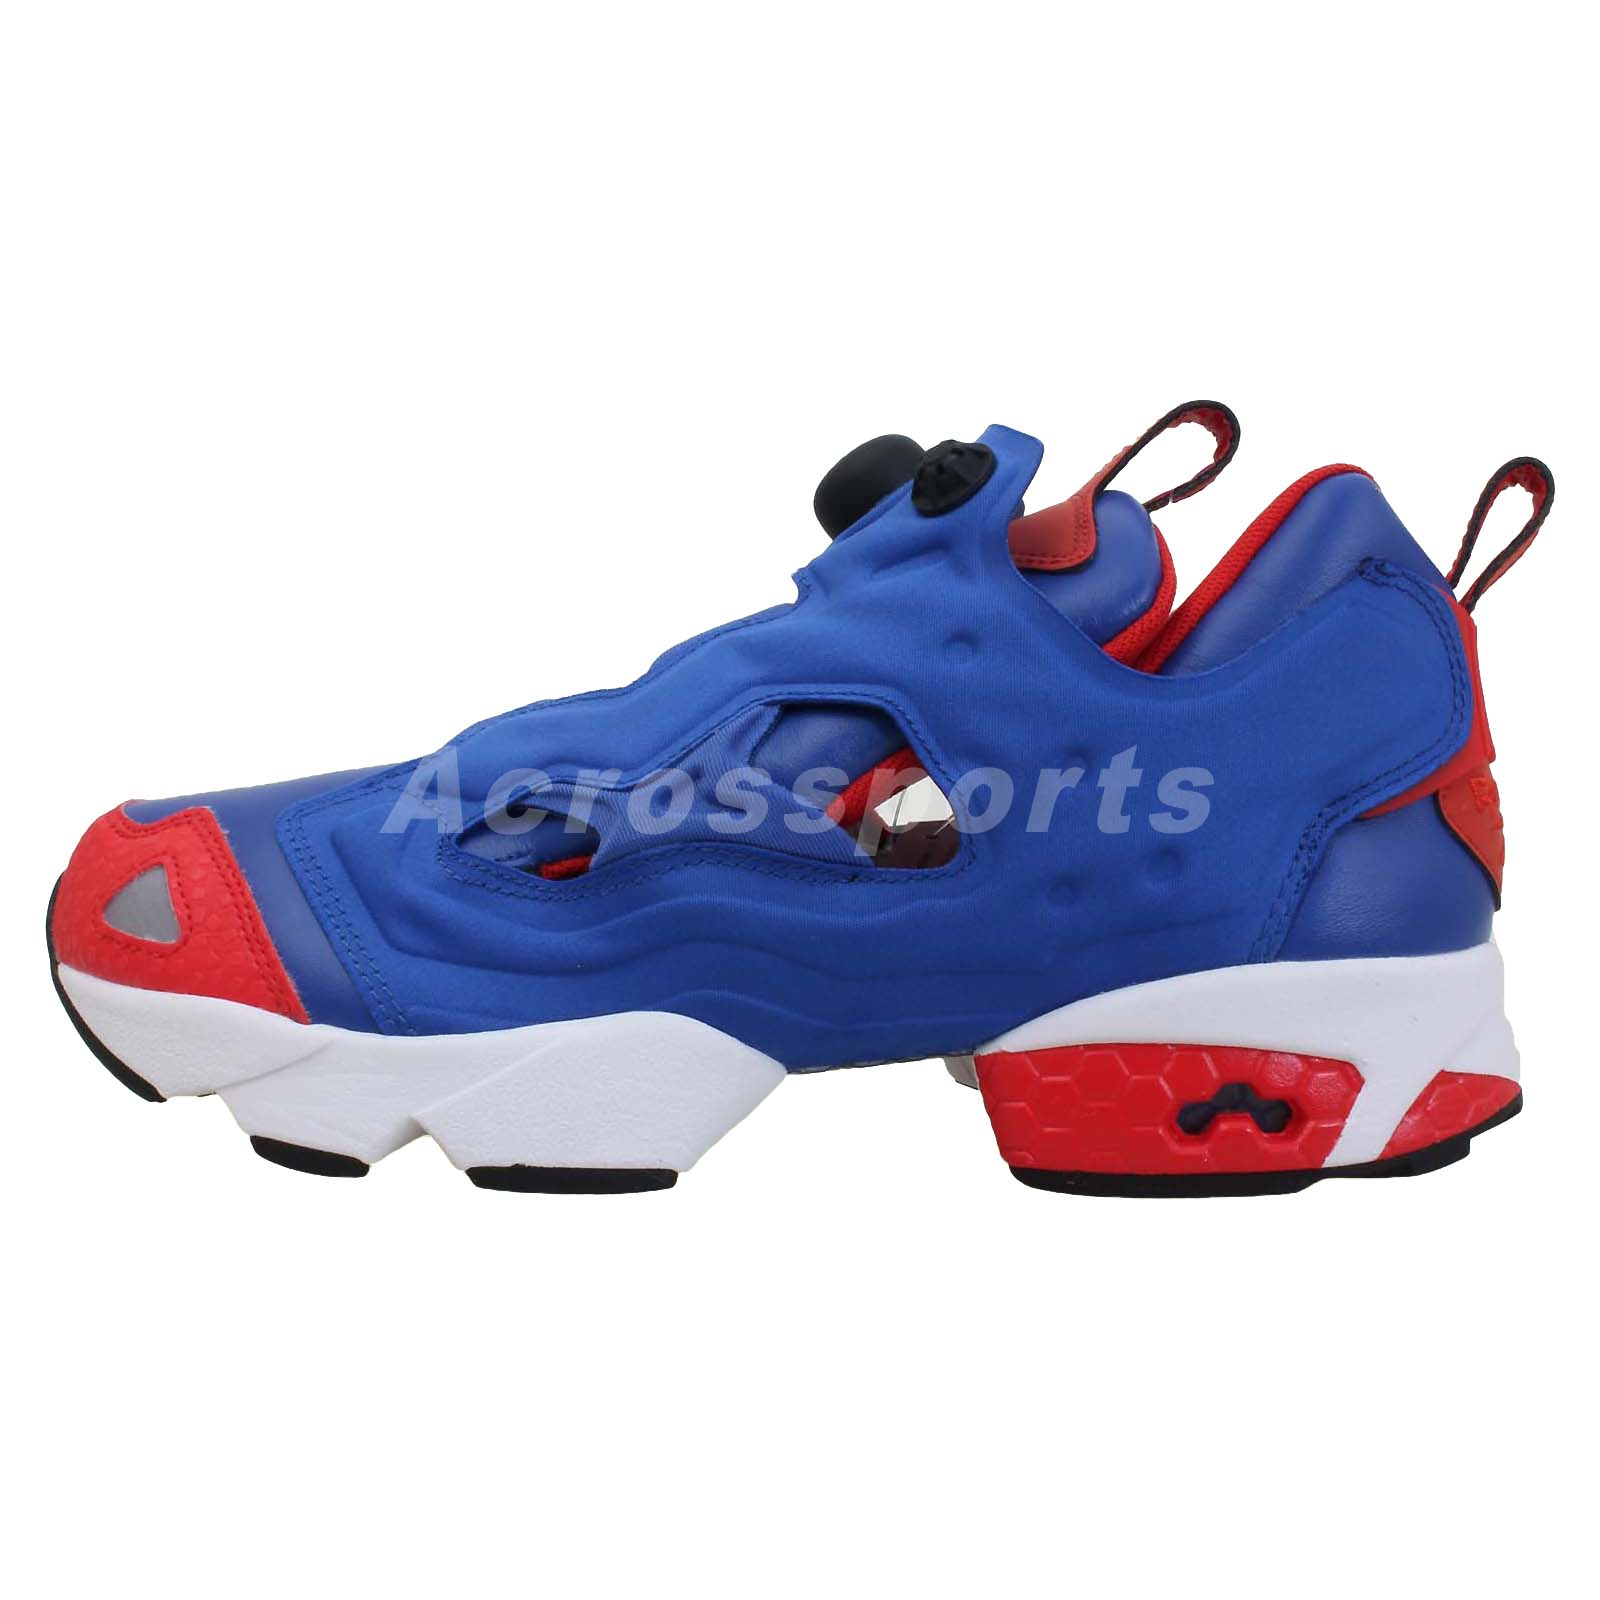 reebok insta pump fury blue red 2013 mens running shoes